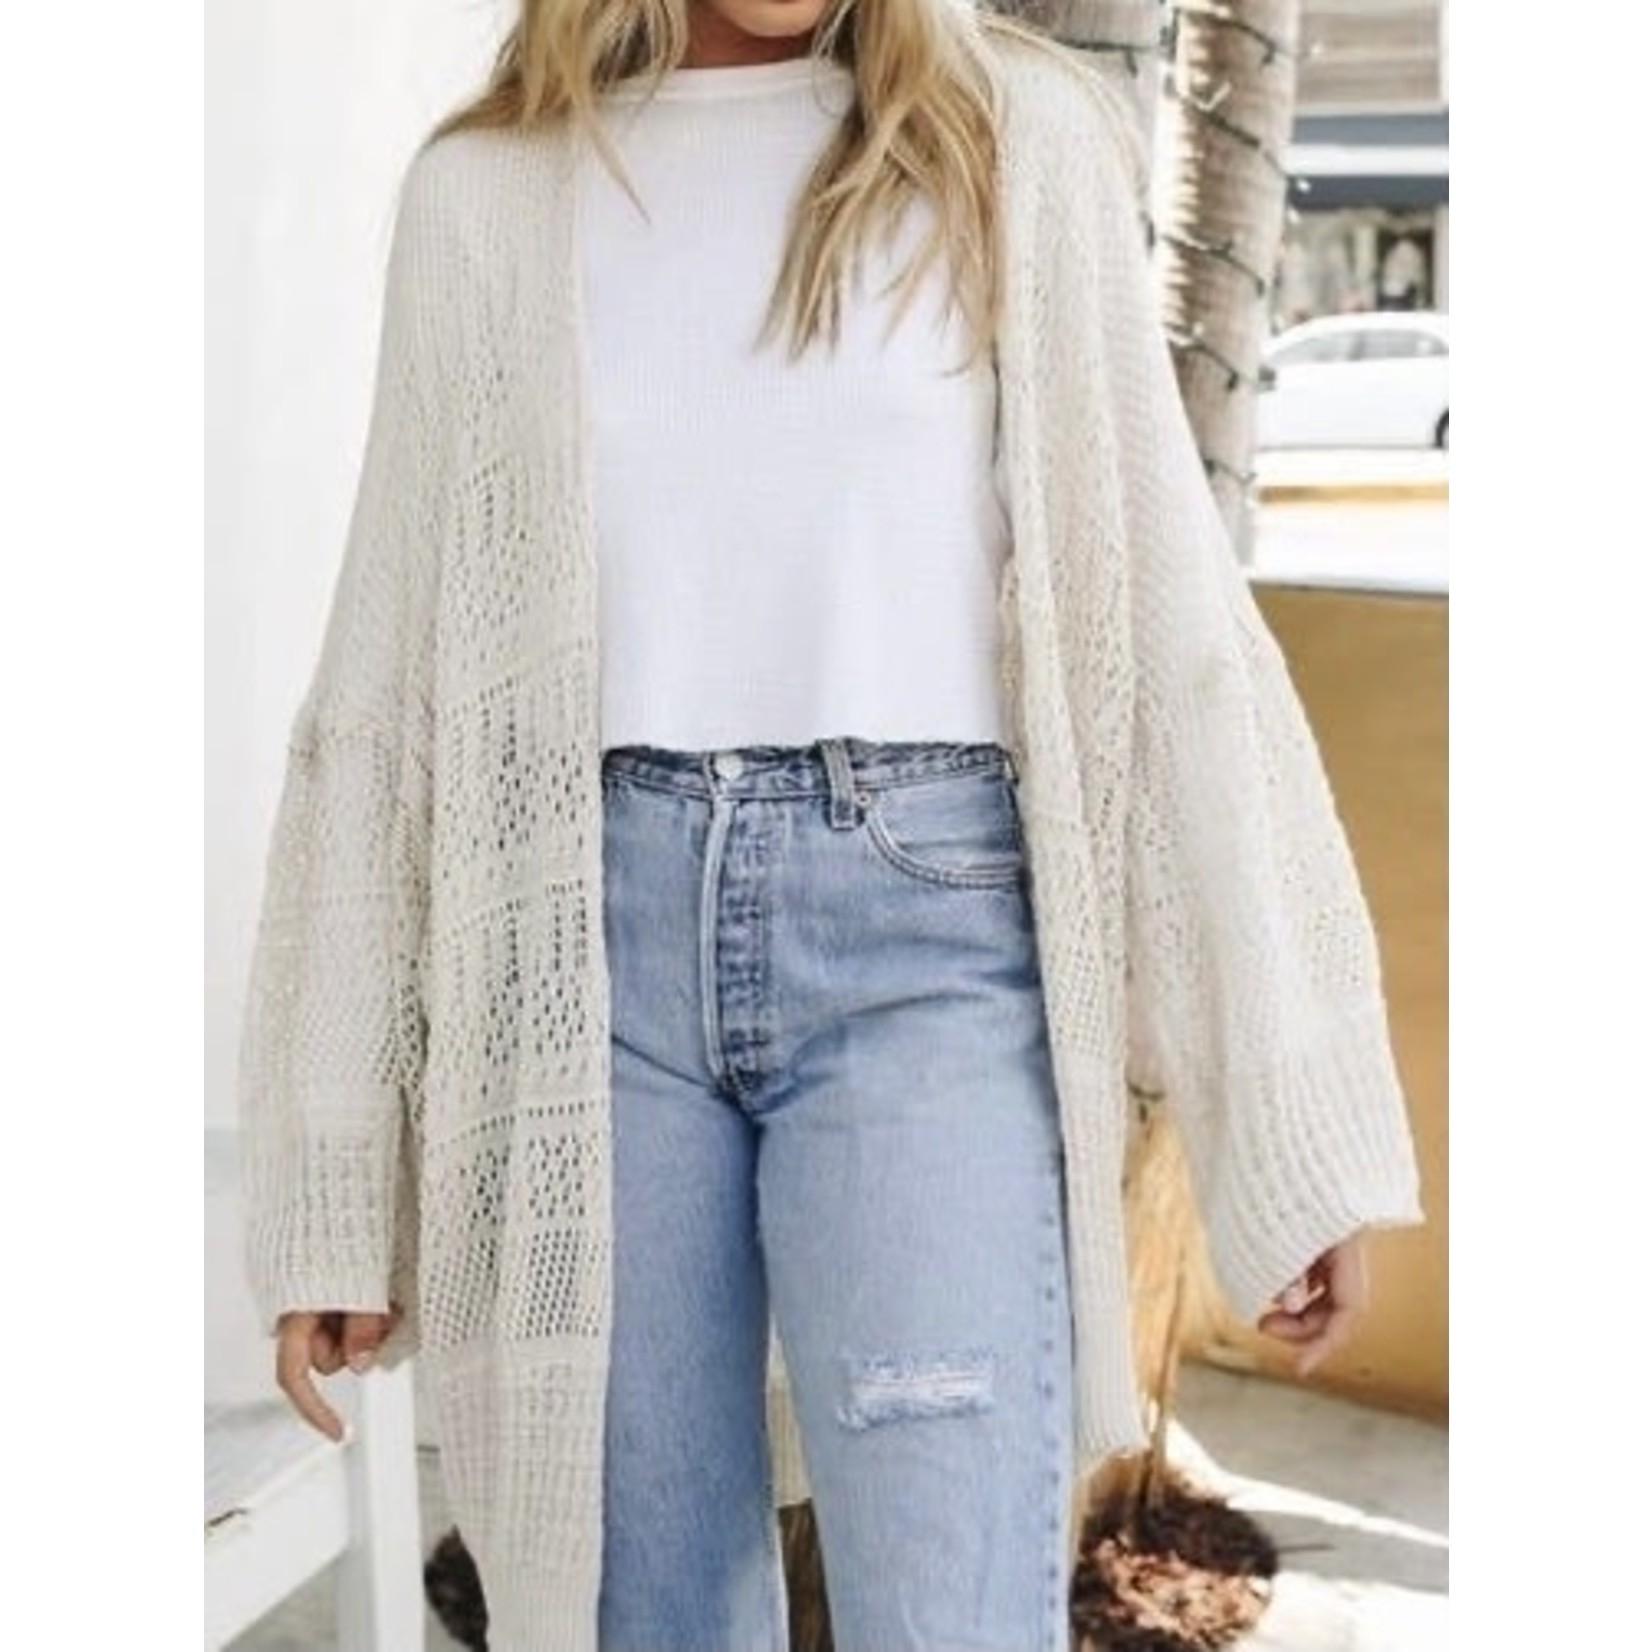 Leto Accessories Knitwear: One Size Cream Netted Cardigan